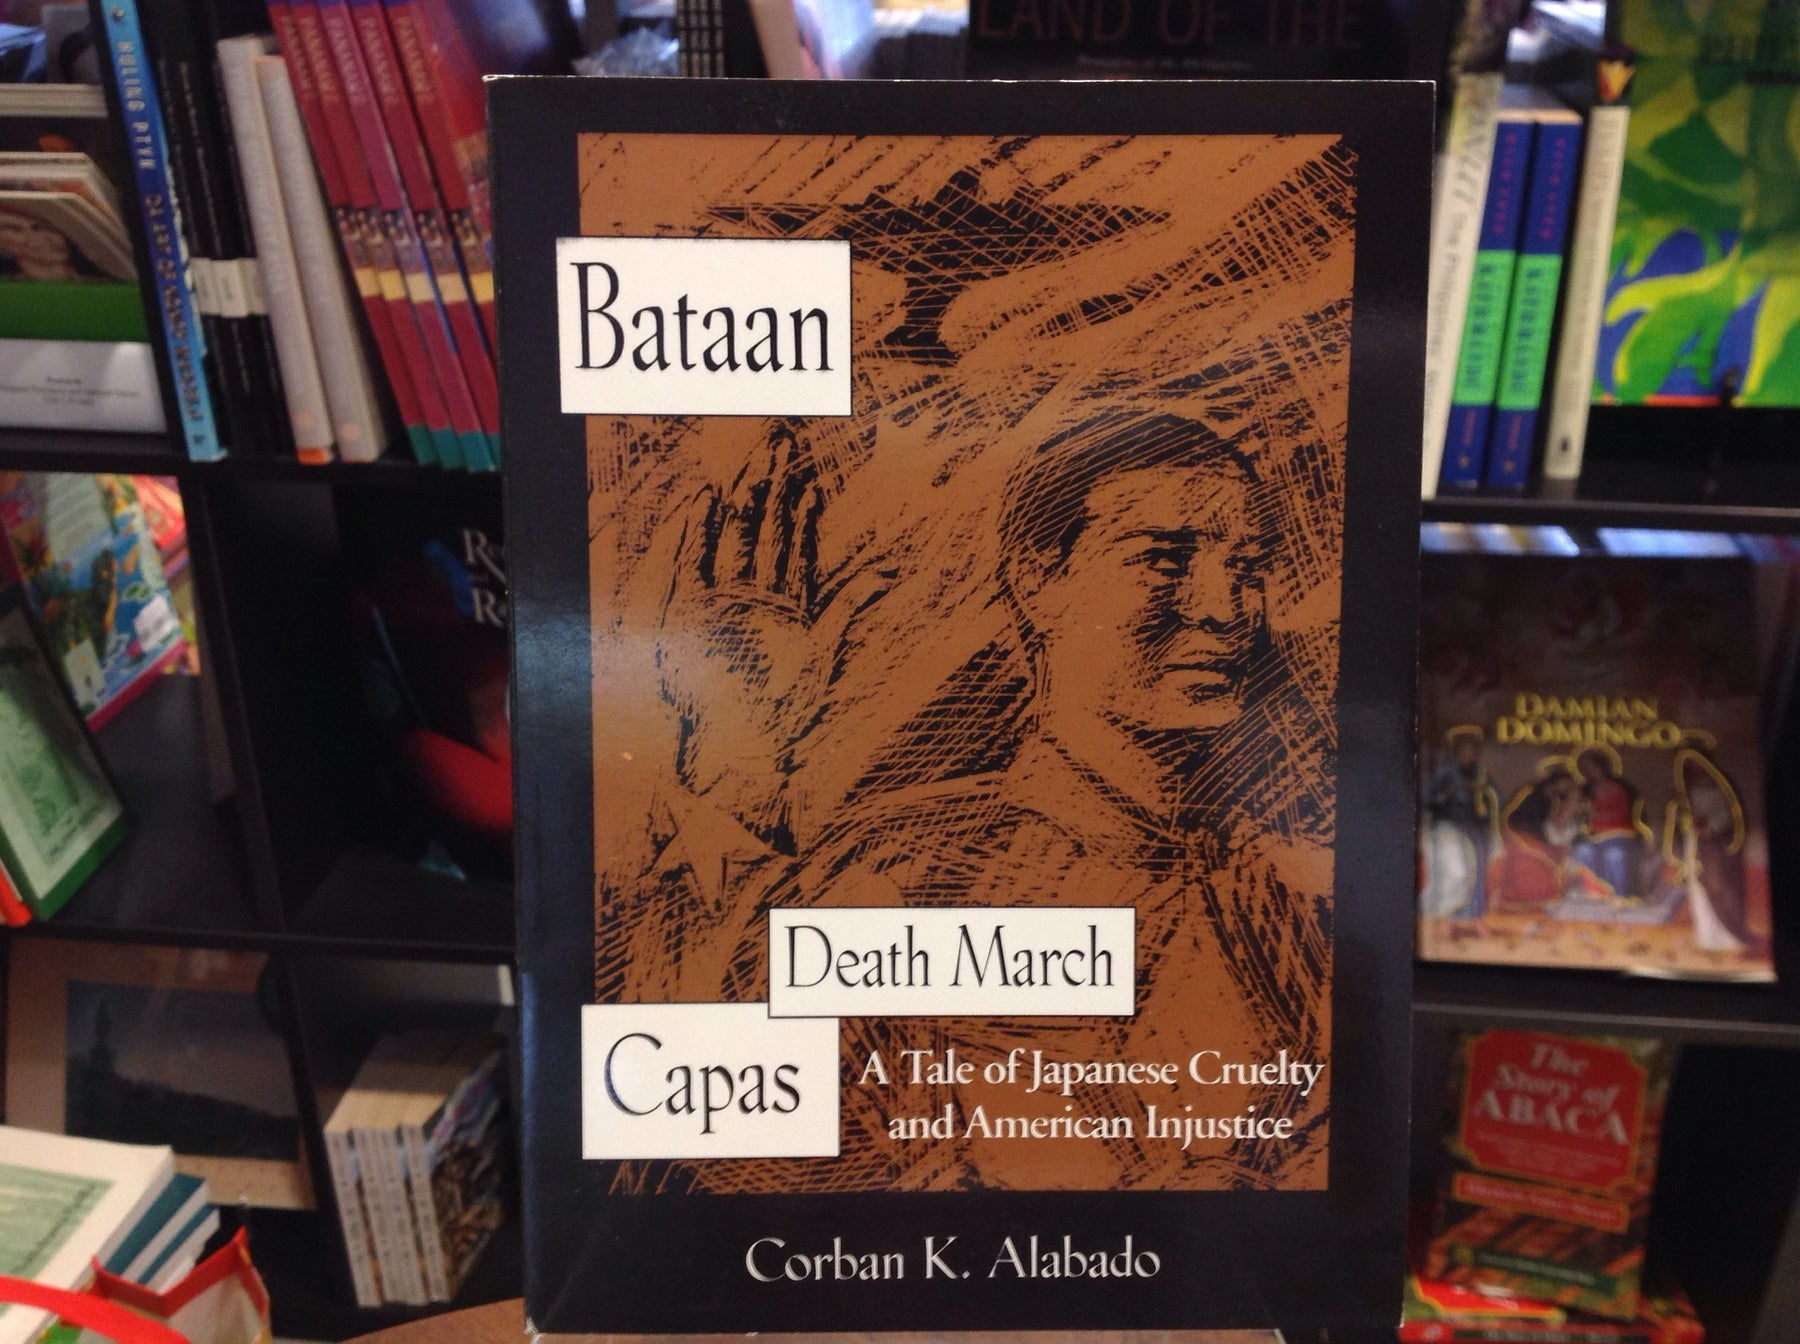 Bataan, Death March, Capas: A Tale of Japanese Cruelty and American Injustice